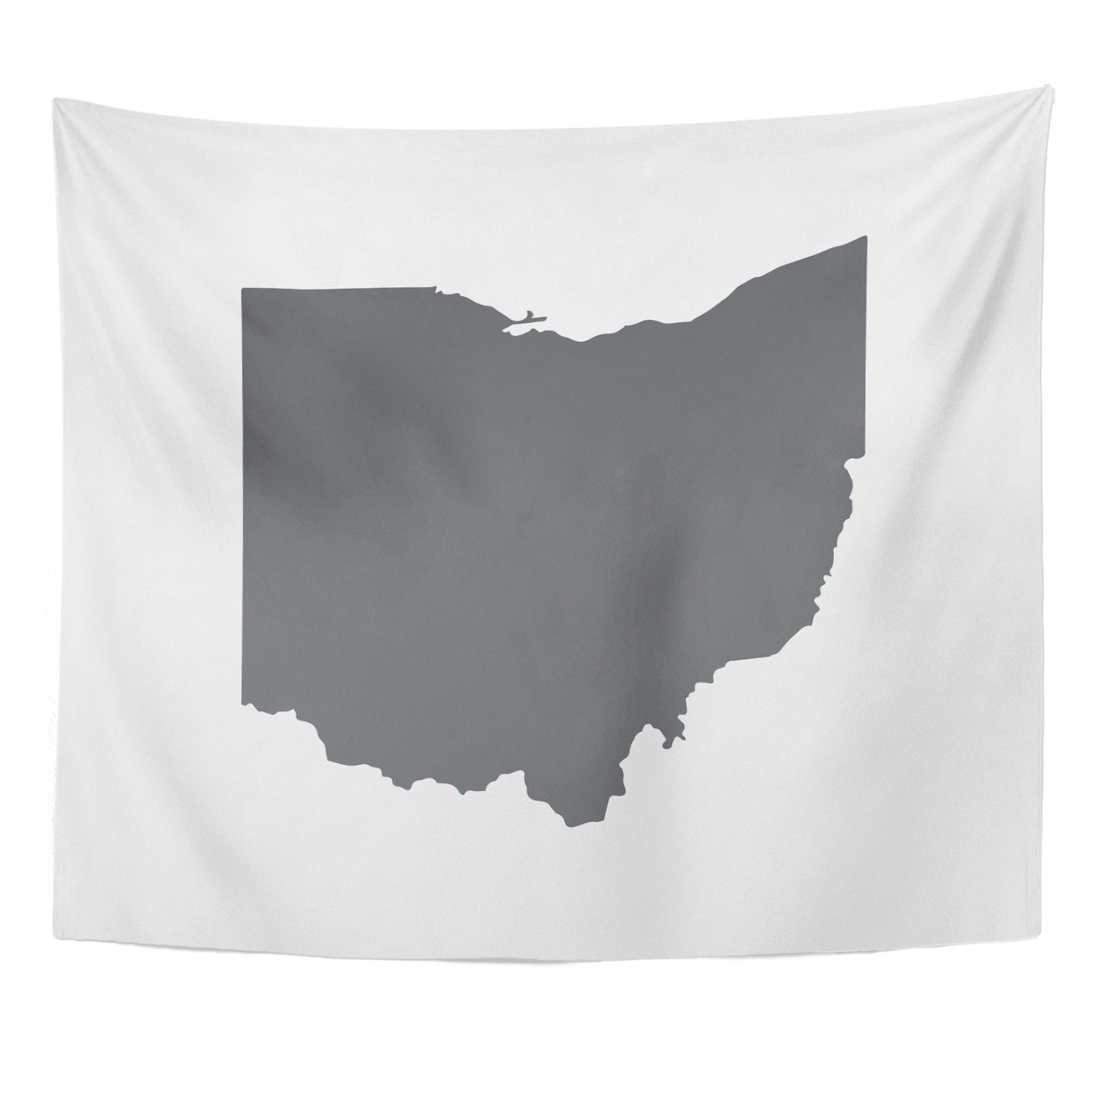 Emvency Tapestry Cleveland Ohio Grey State Border Map Toledo Abstract America Home Decor Wall Hanging for Living Room Bedroom Dorm 50x60 inches